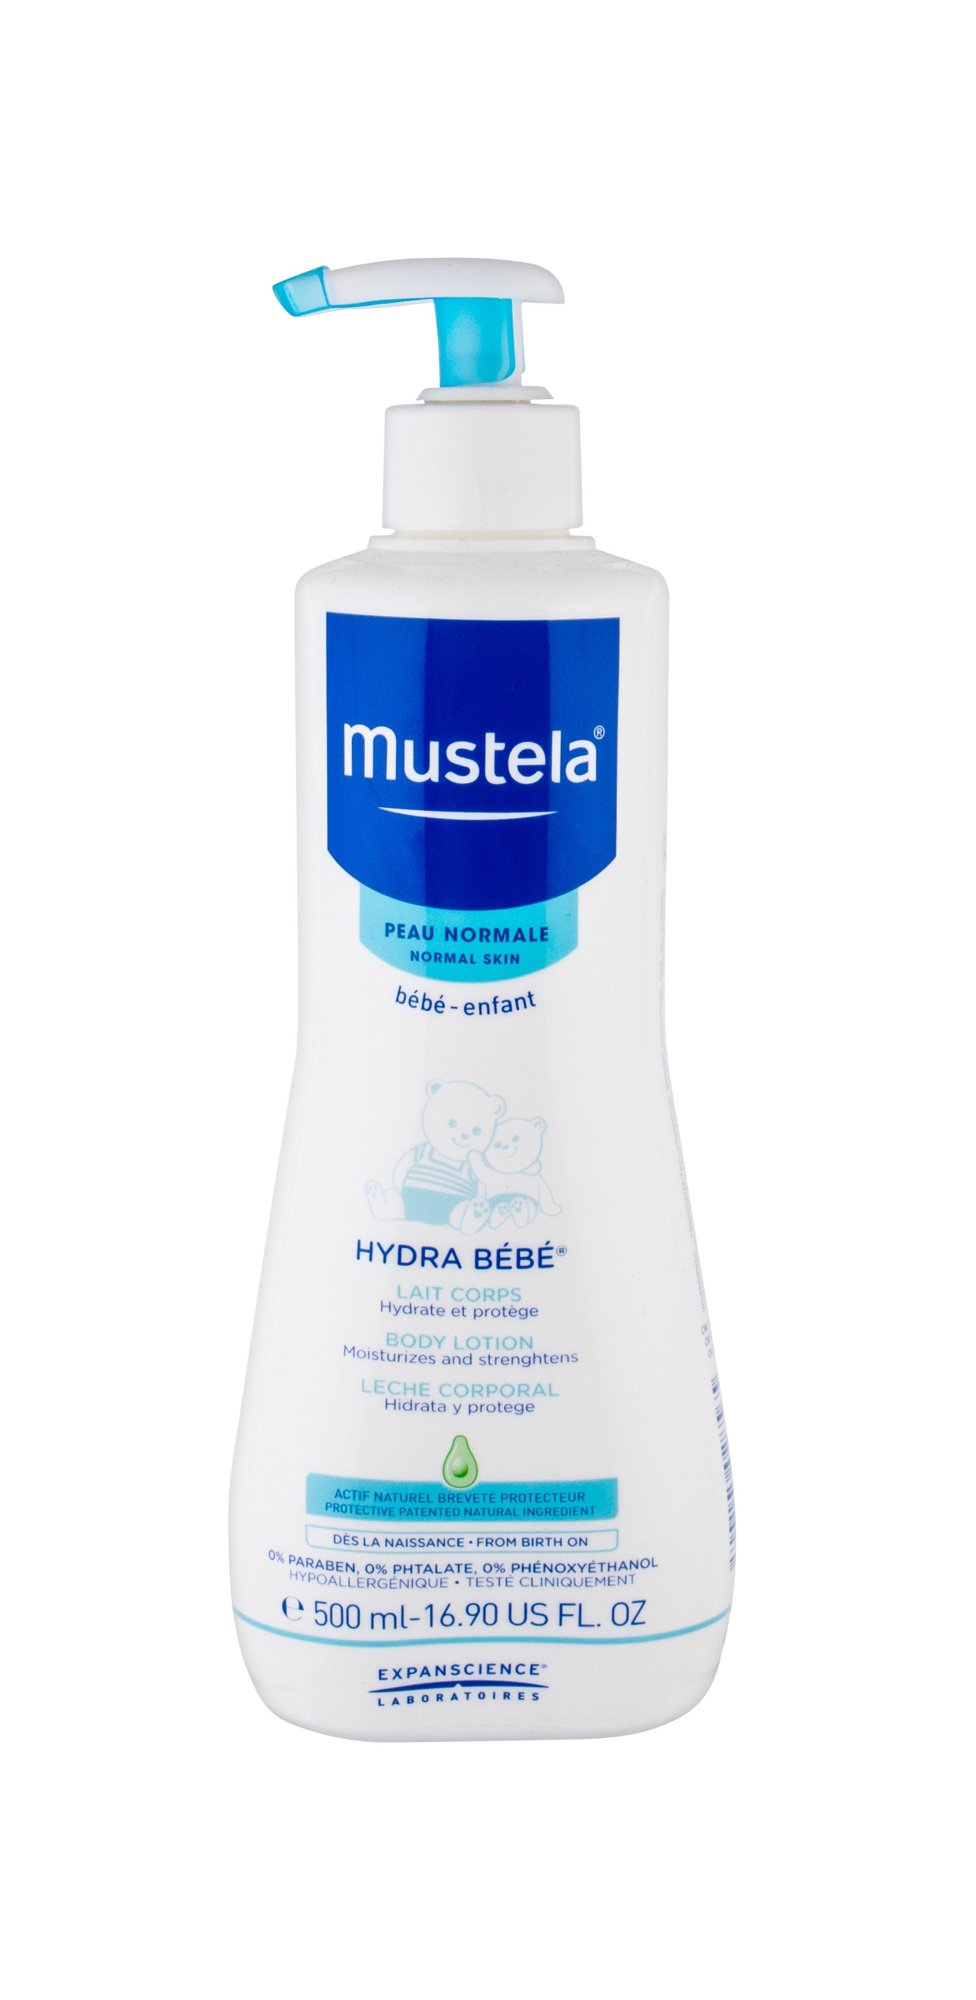 Mustela Hydra Bébé Body Lotion 500ml  Body Lotion